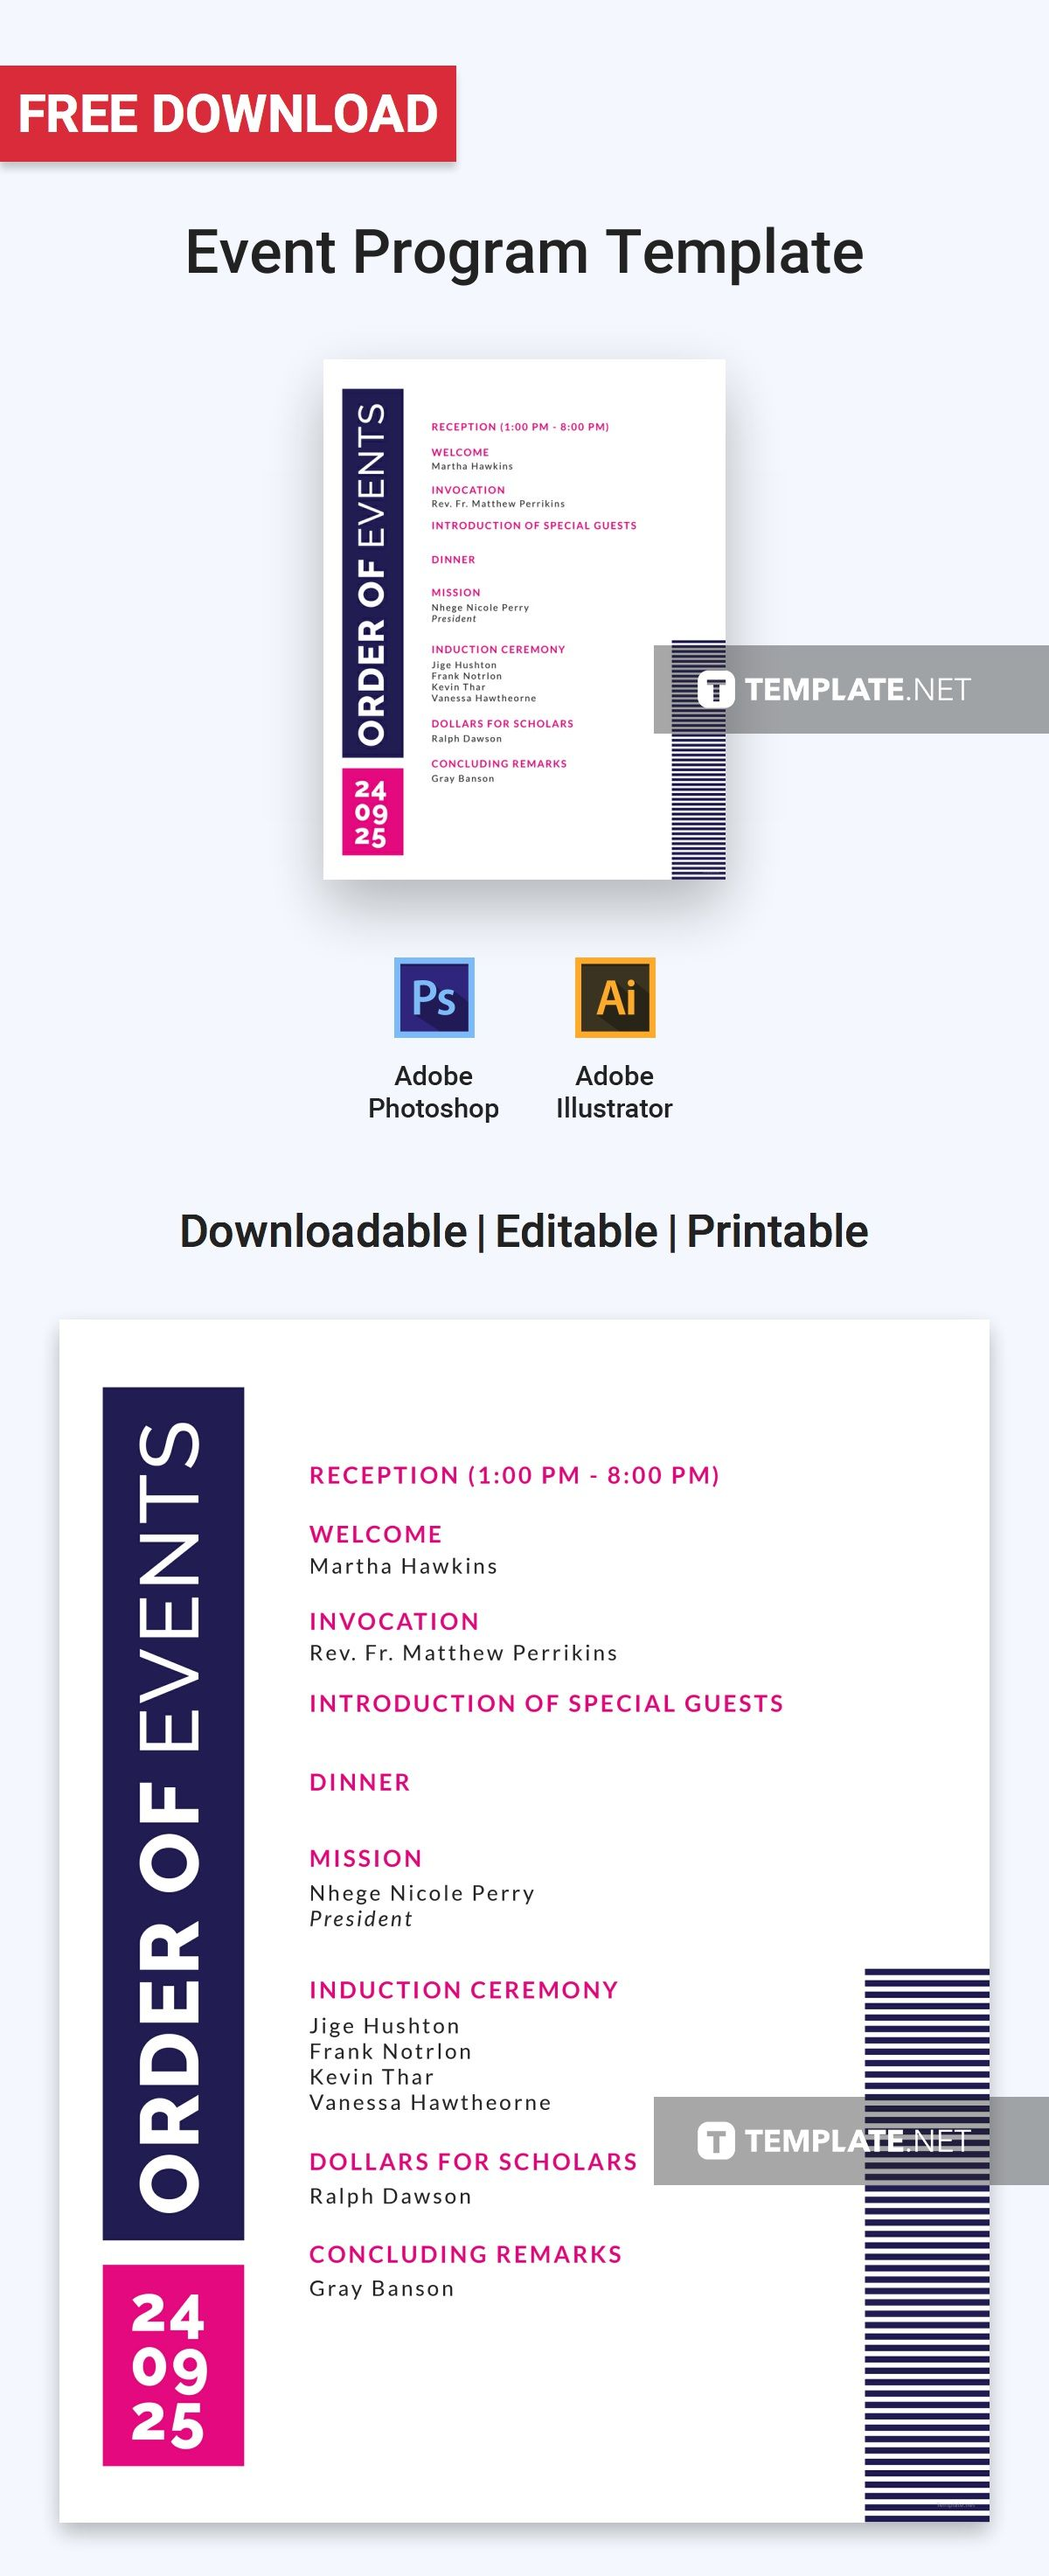 Free event program invitation free program templates pinterest download free event program template for personal amp business use professionally designed free program templates wajeb